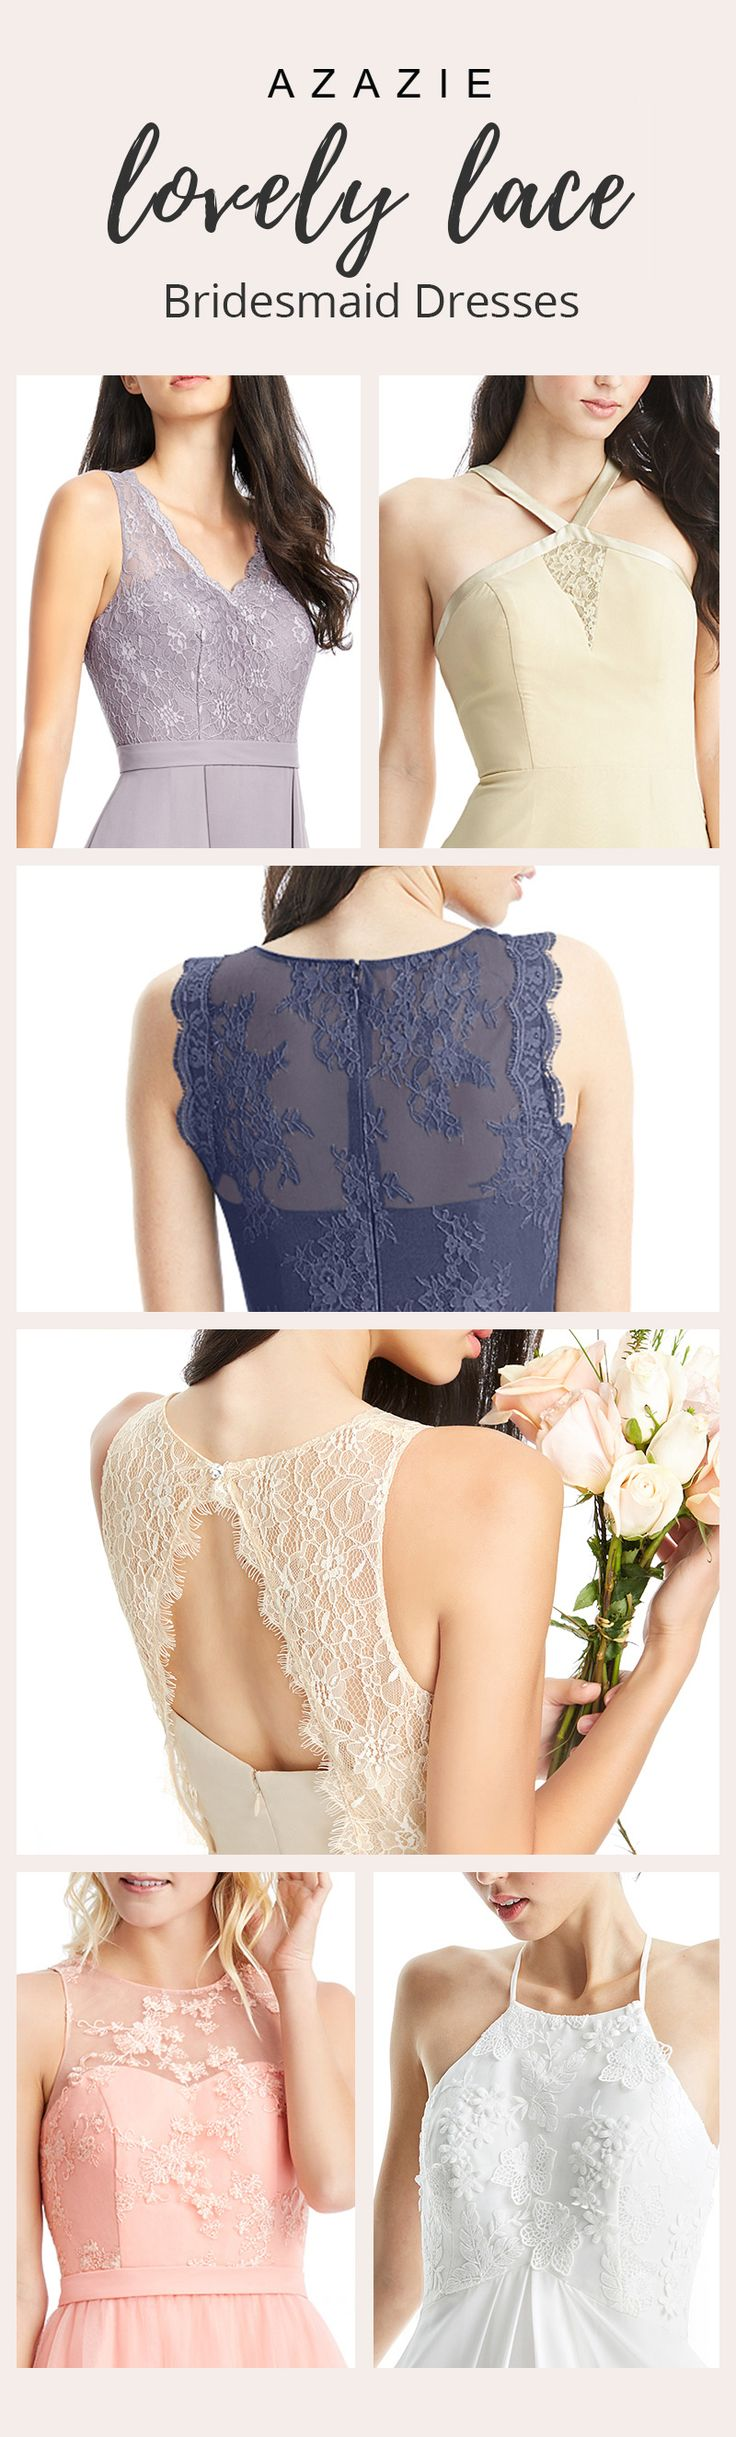 Dress your bridesmaids in a romantic lace style! Available in over 30 colors, Azazie is a bride's (& bridesmaid's) best friend!